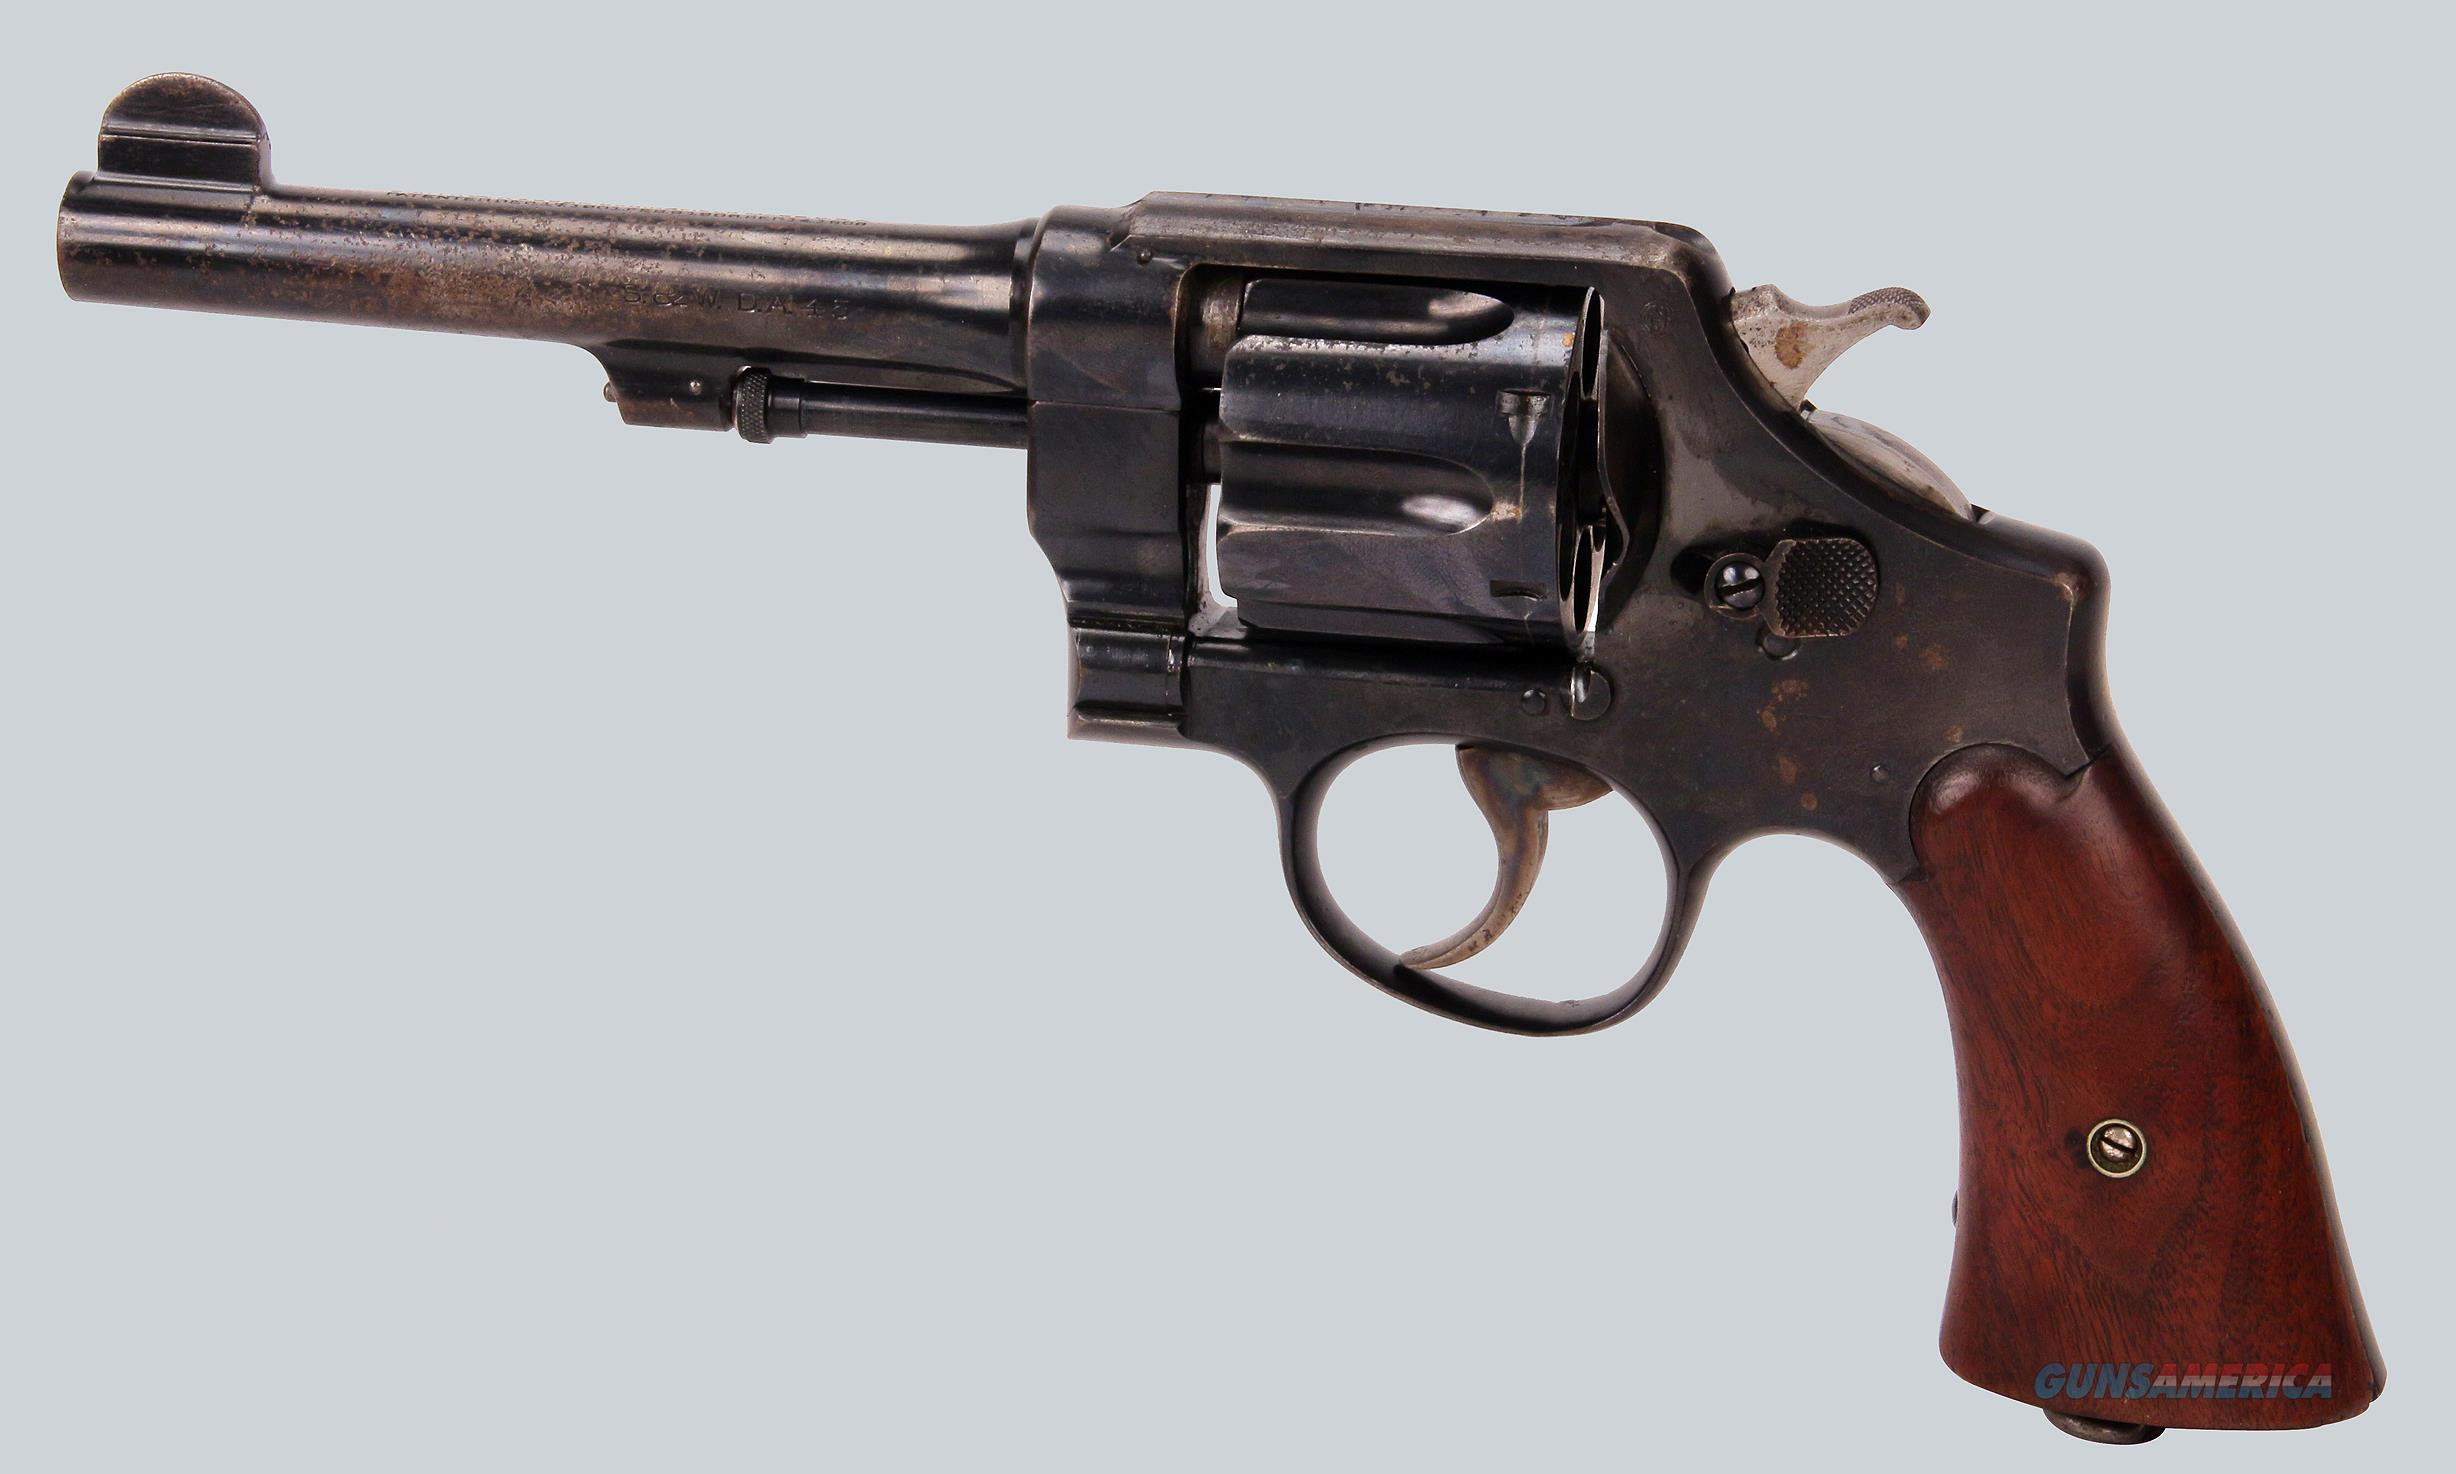 Smith & Wesson 45acp 1917 Revolver  Guns > Pistols > Smith & Wesson Revolvers > Full Frame Revolver